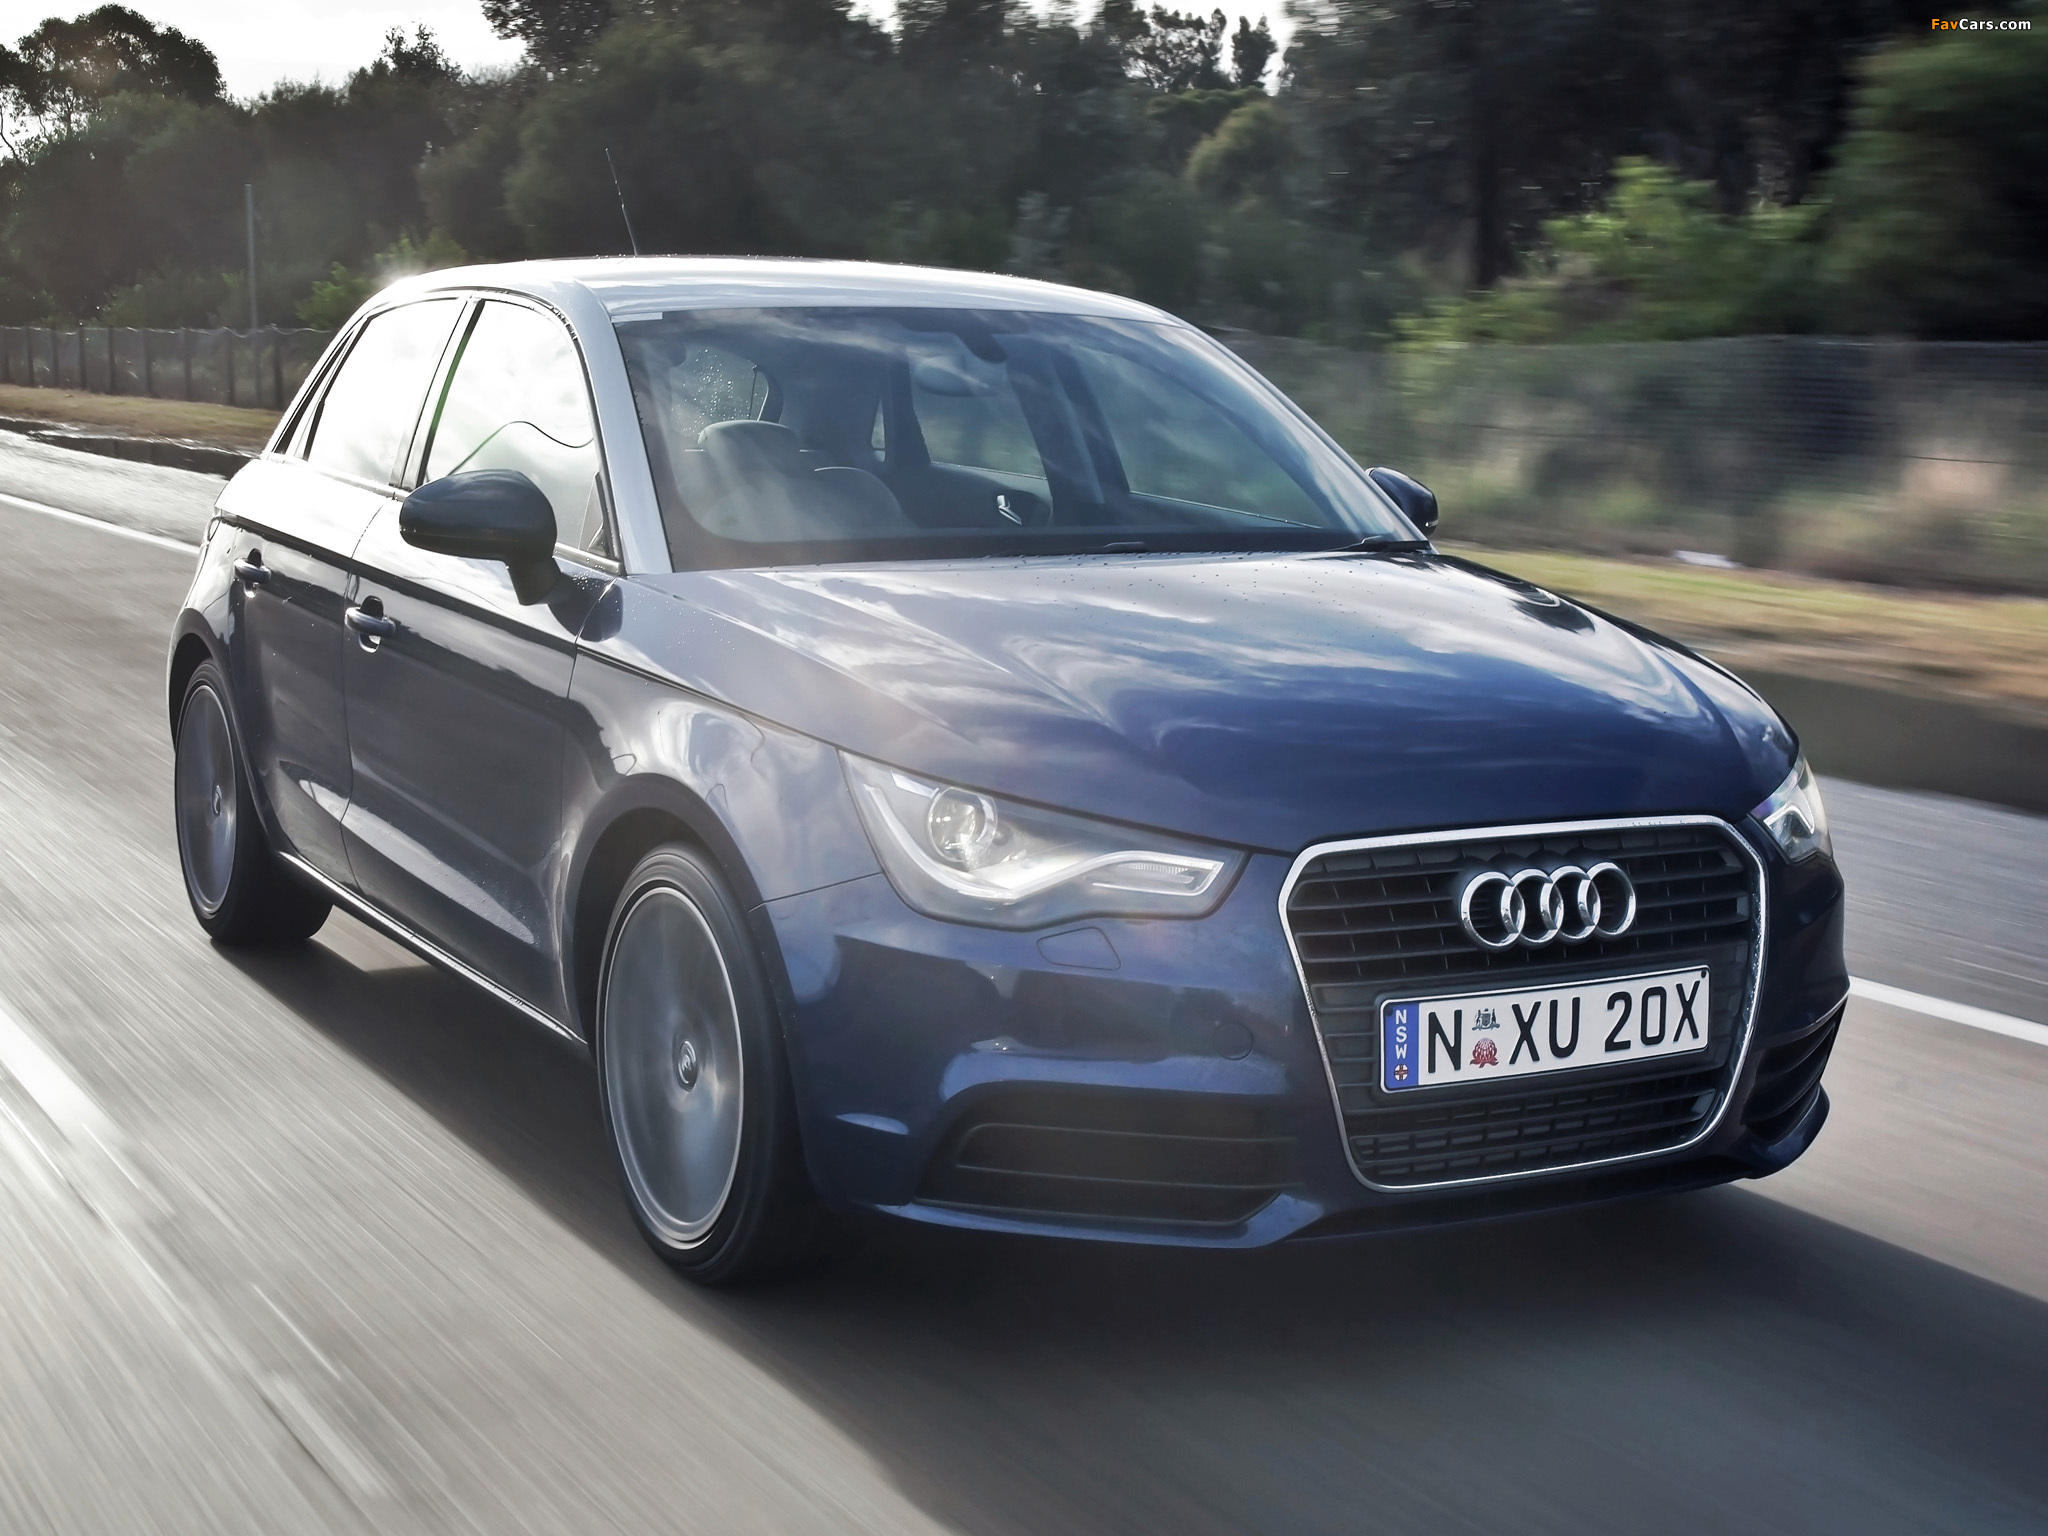 2048x1536 - Audi A1 Wallpapers 34